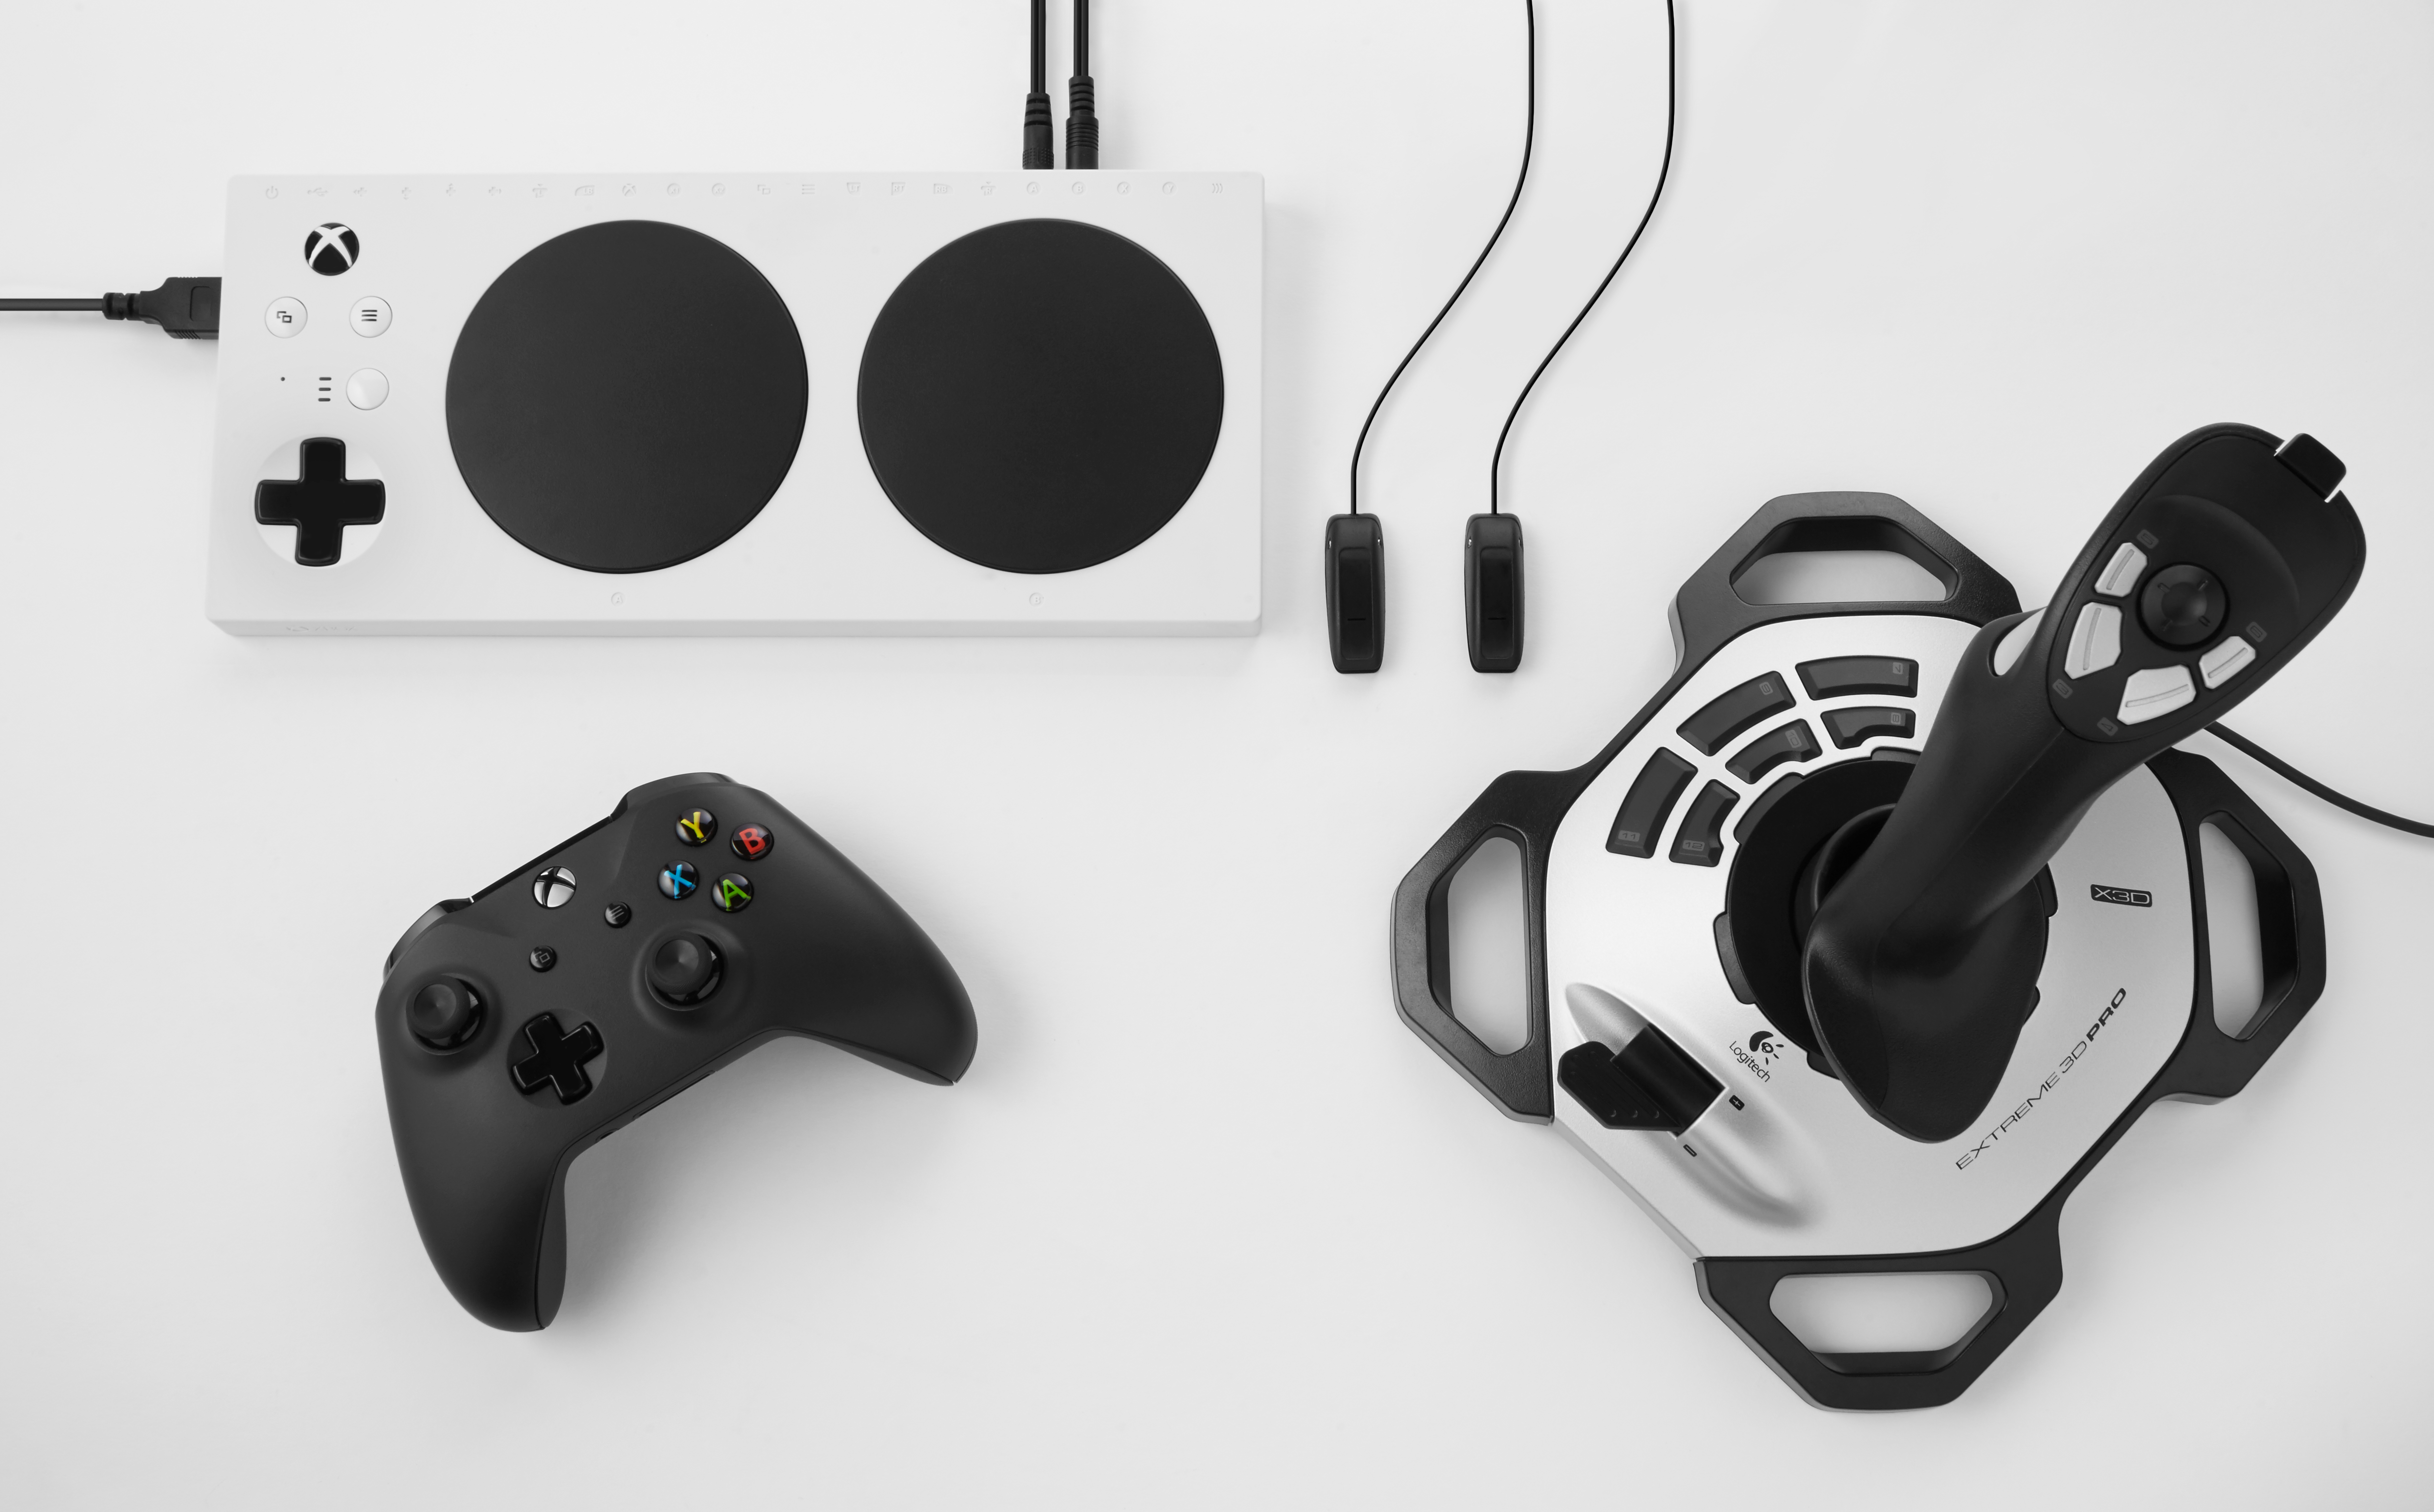 Xbox Adaptive Controller and Equipment